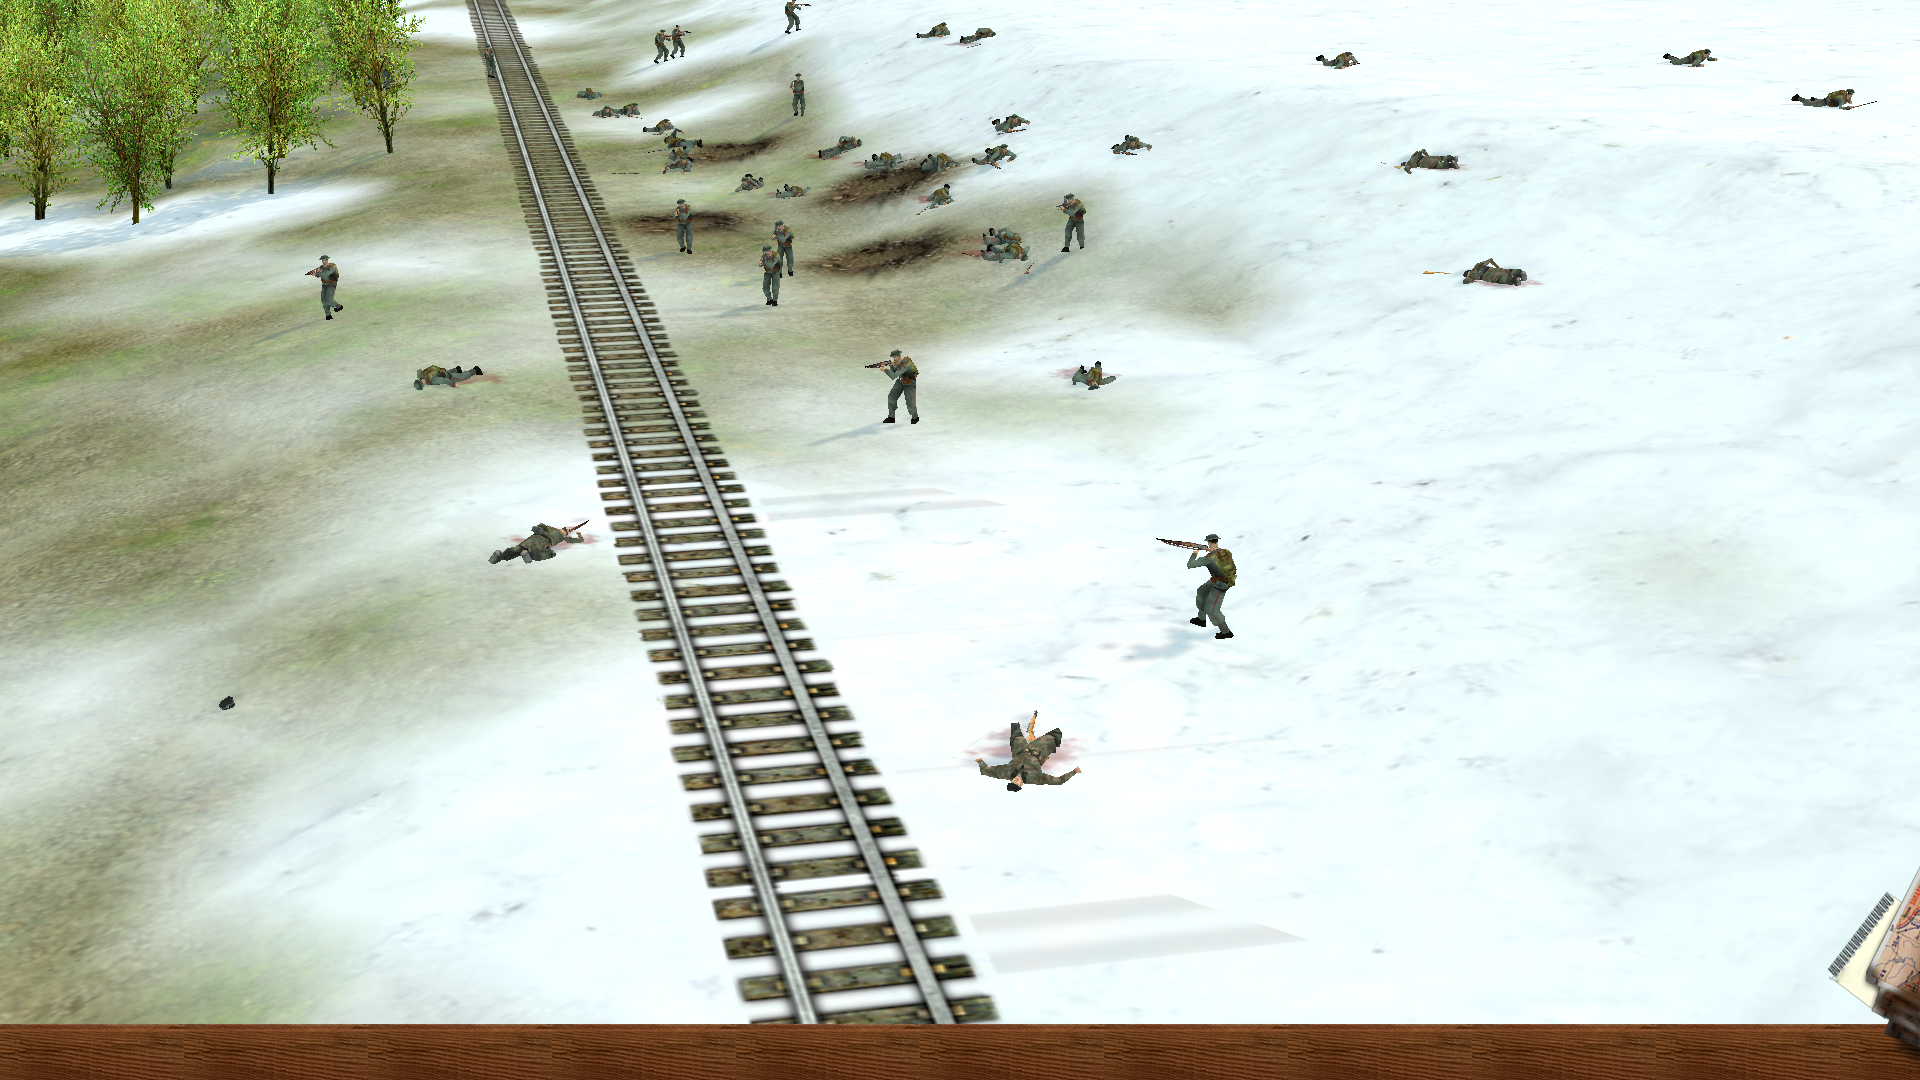 Screenshot taken during Arctic Warfare mission